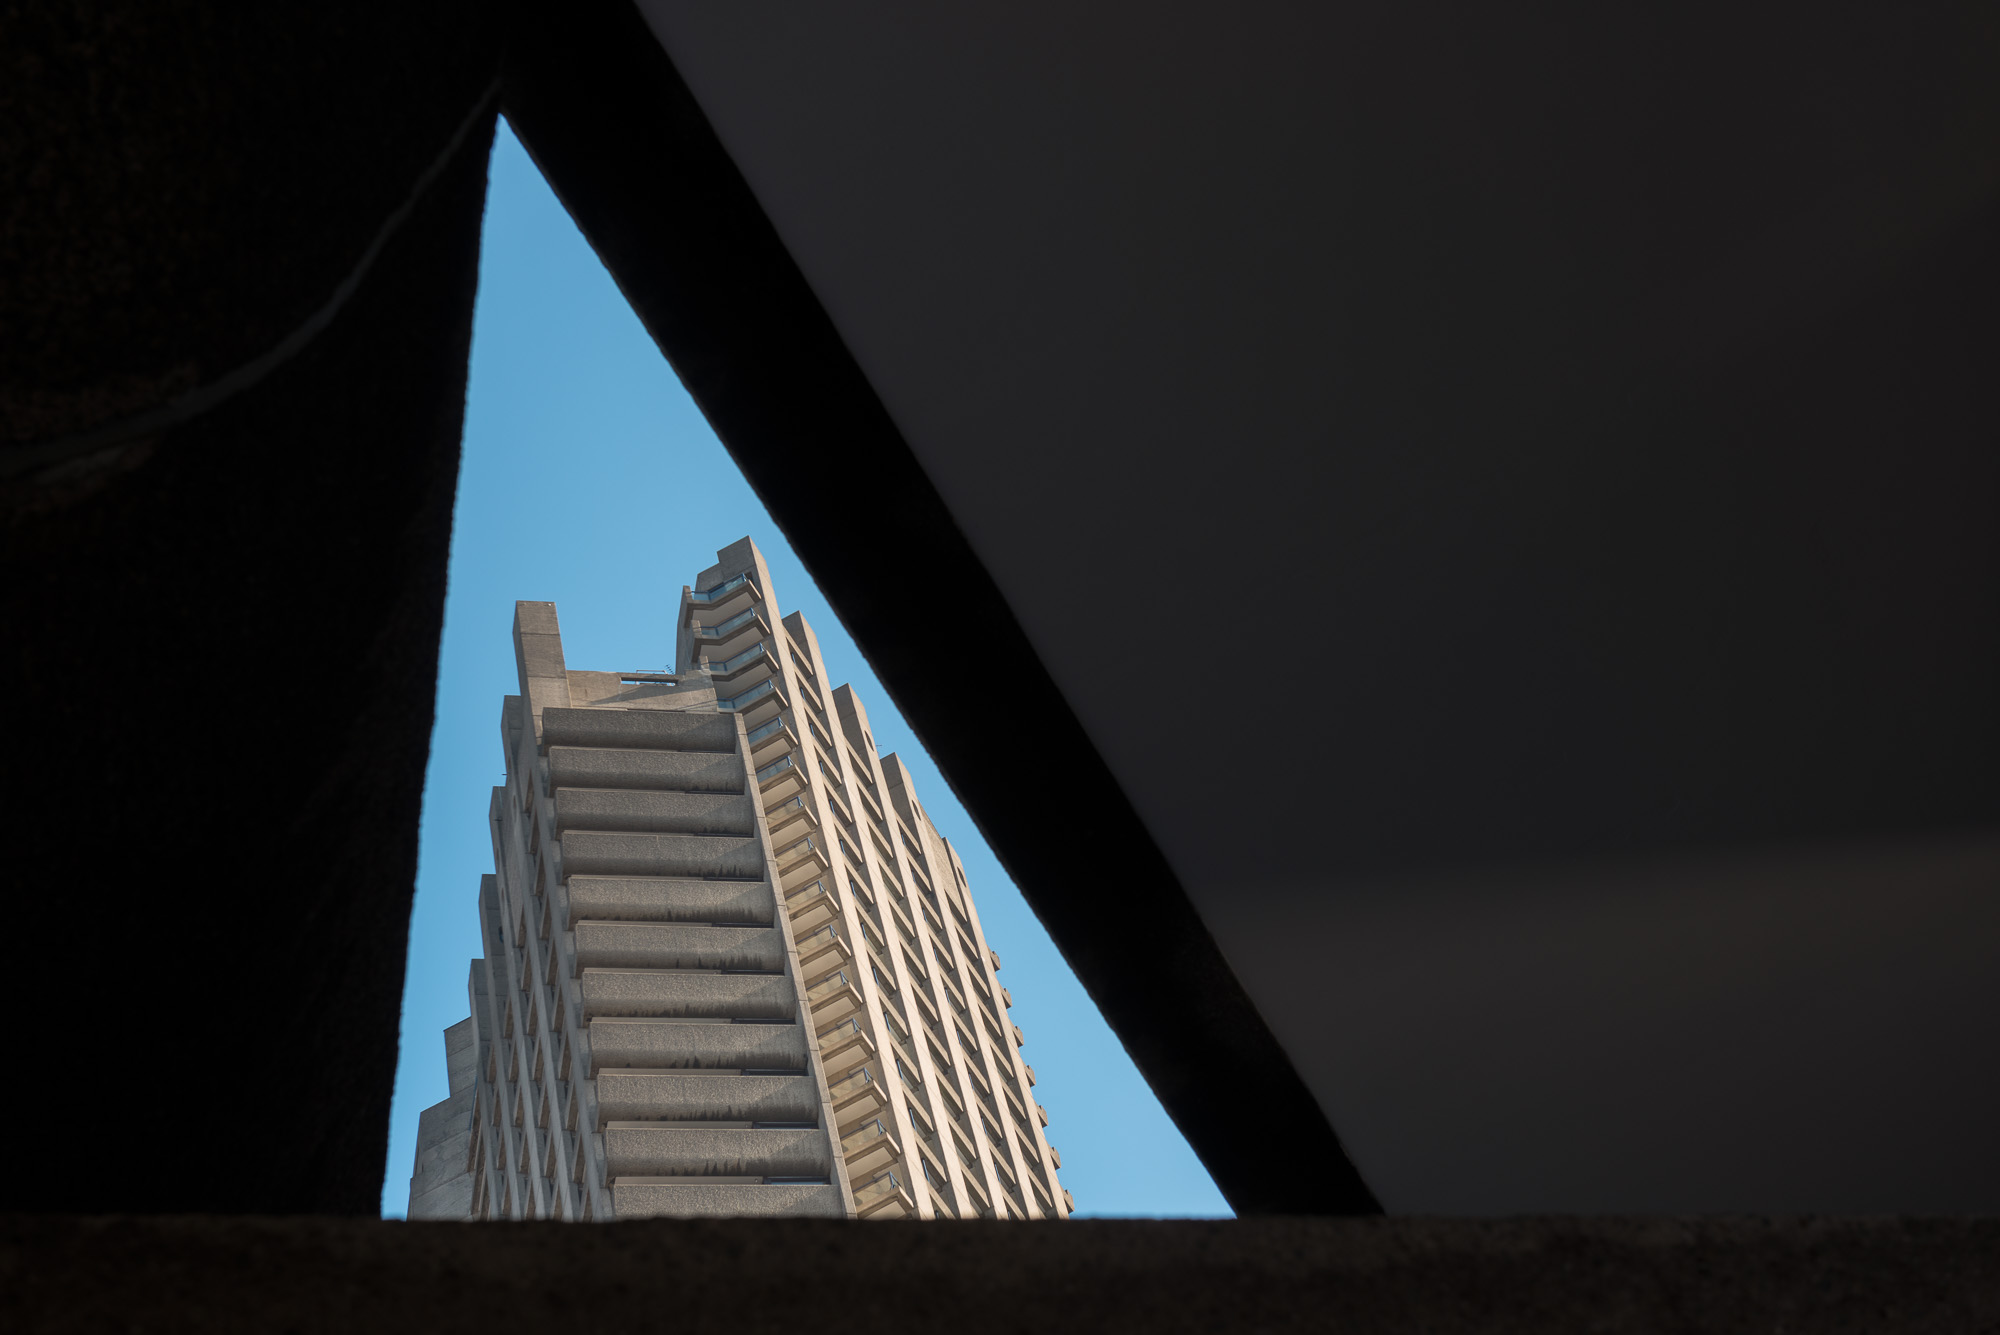 Looking up through a void in a roof, forming a triangle of sky. Framed in the sky is the top of a tower block in the Barbican, which also forms a triangle shape.